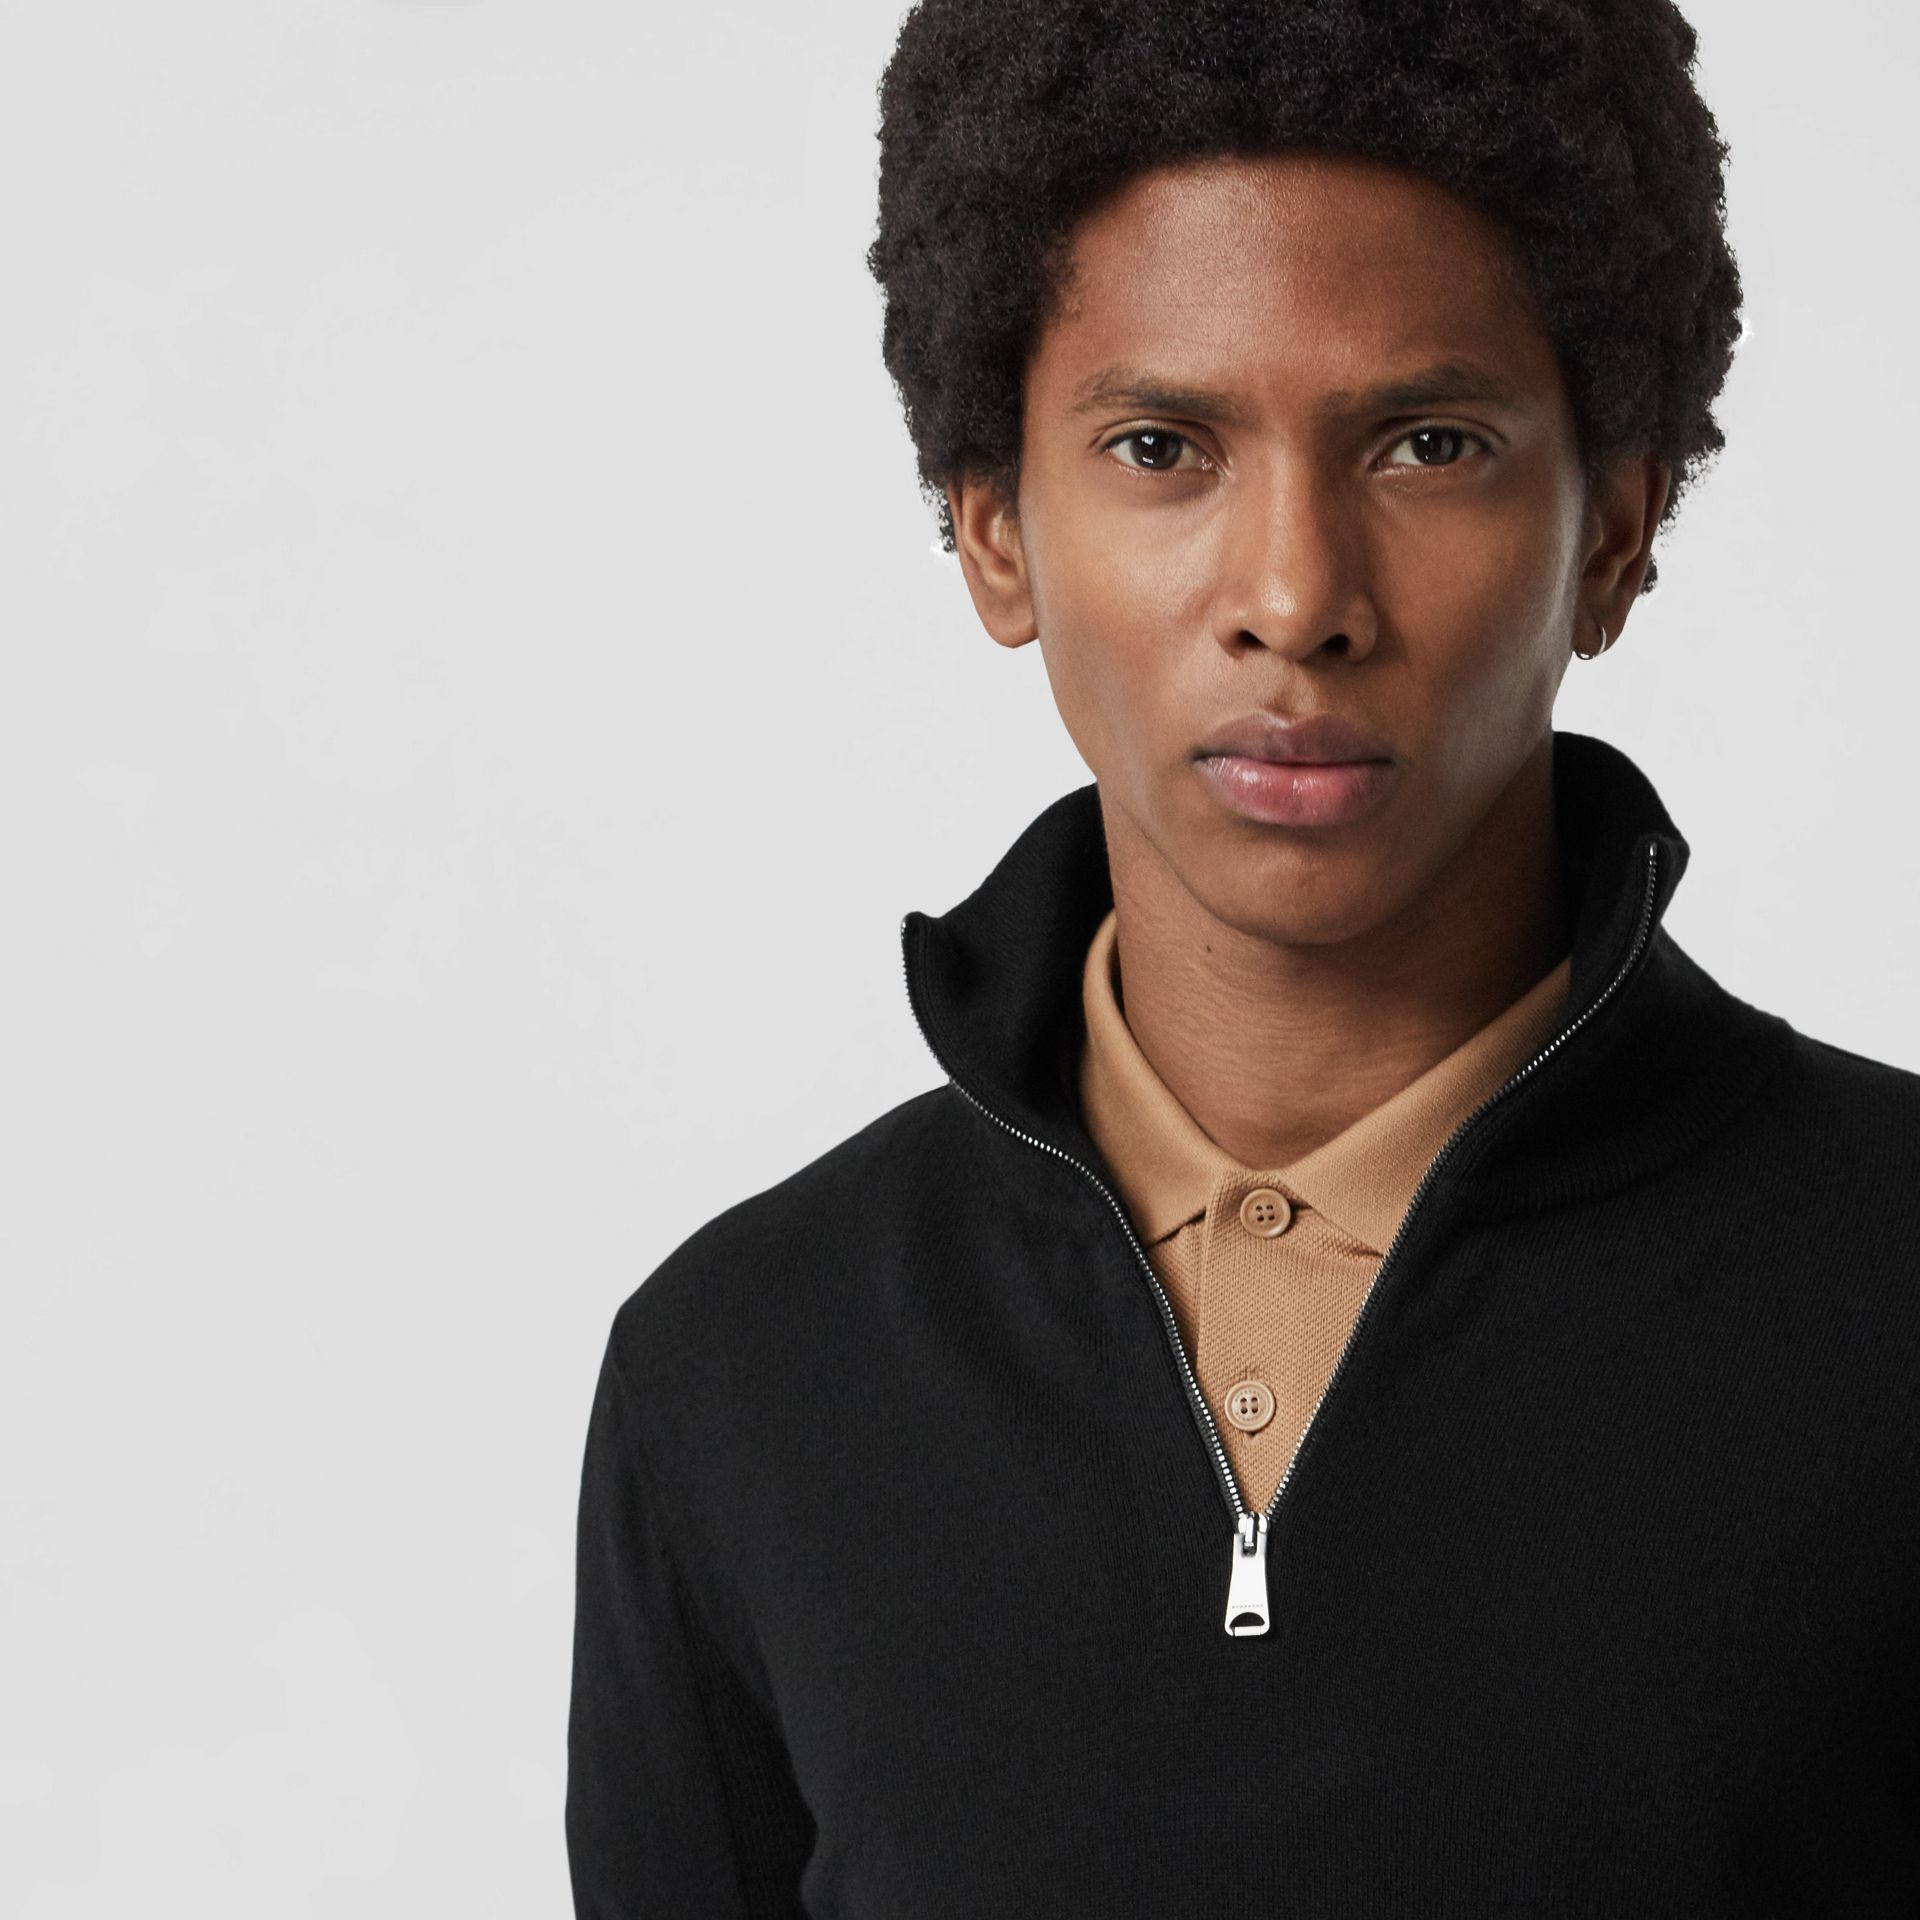 Merino Wool Half-zip Sweater in Black - Men | Burberry United Kingdom - gallery image 4